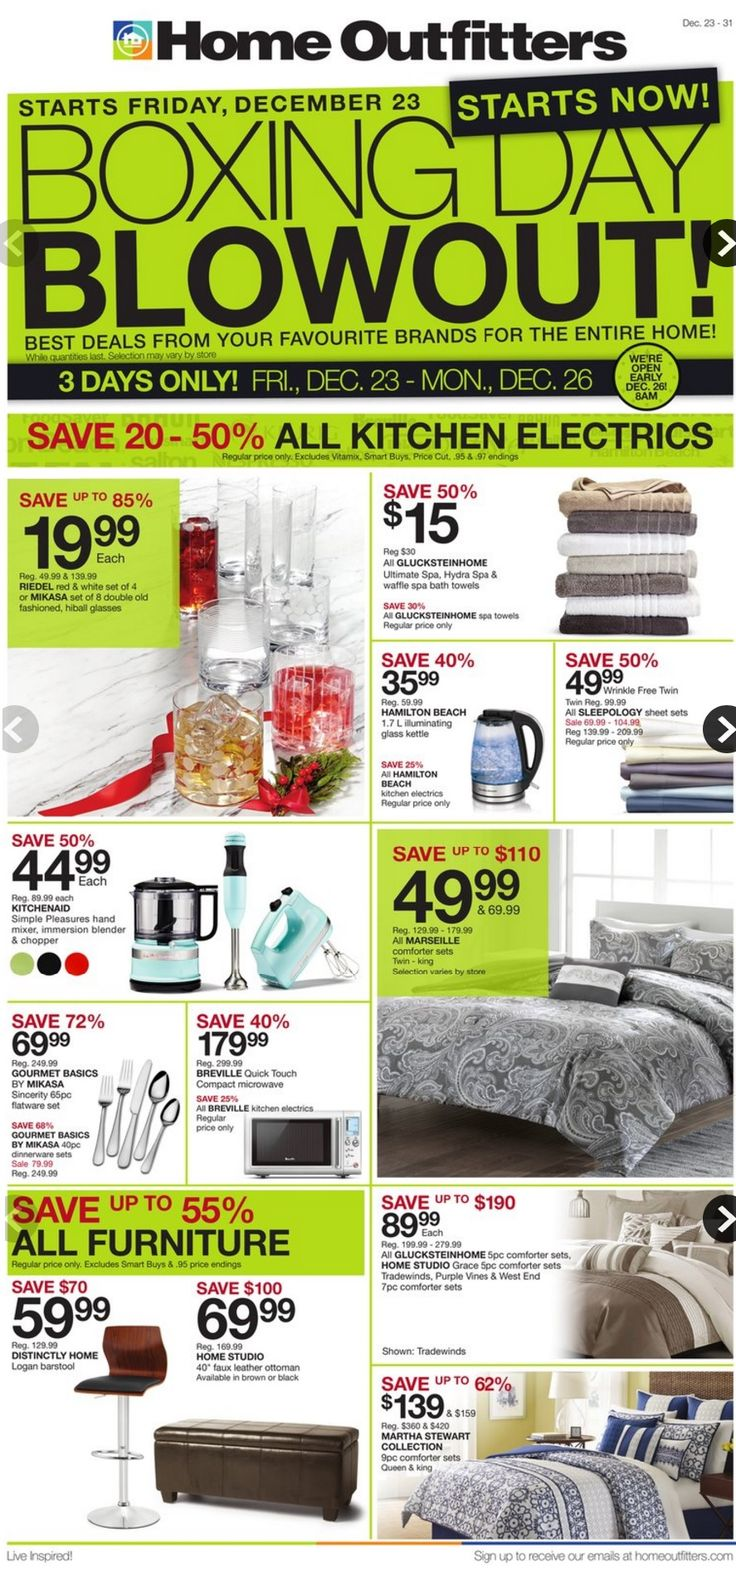 Home Outfitters Boxing Week Flyer December 23 - December 31, 2016